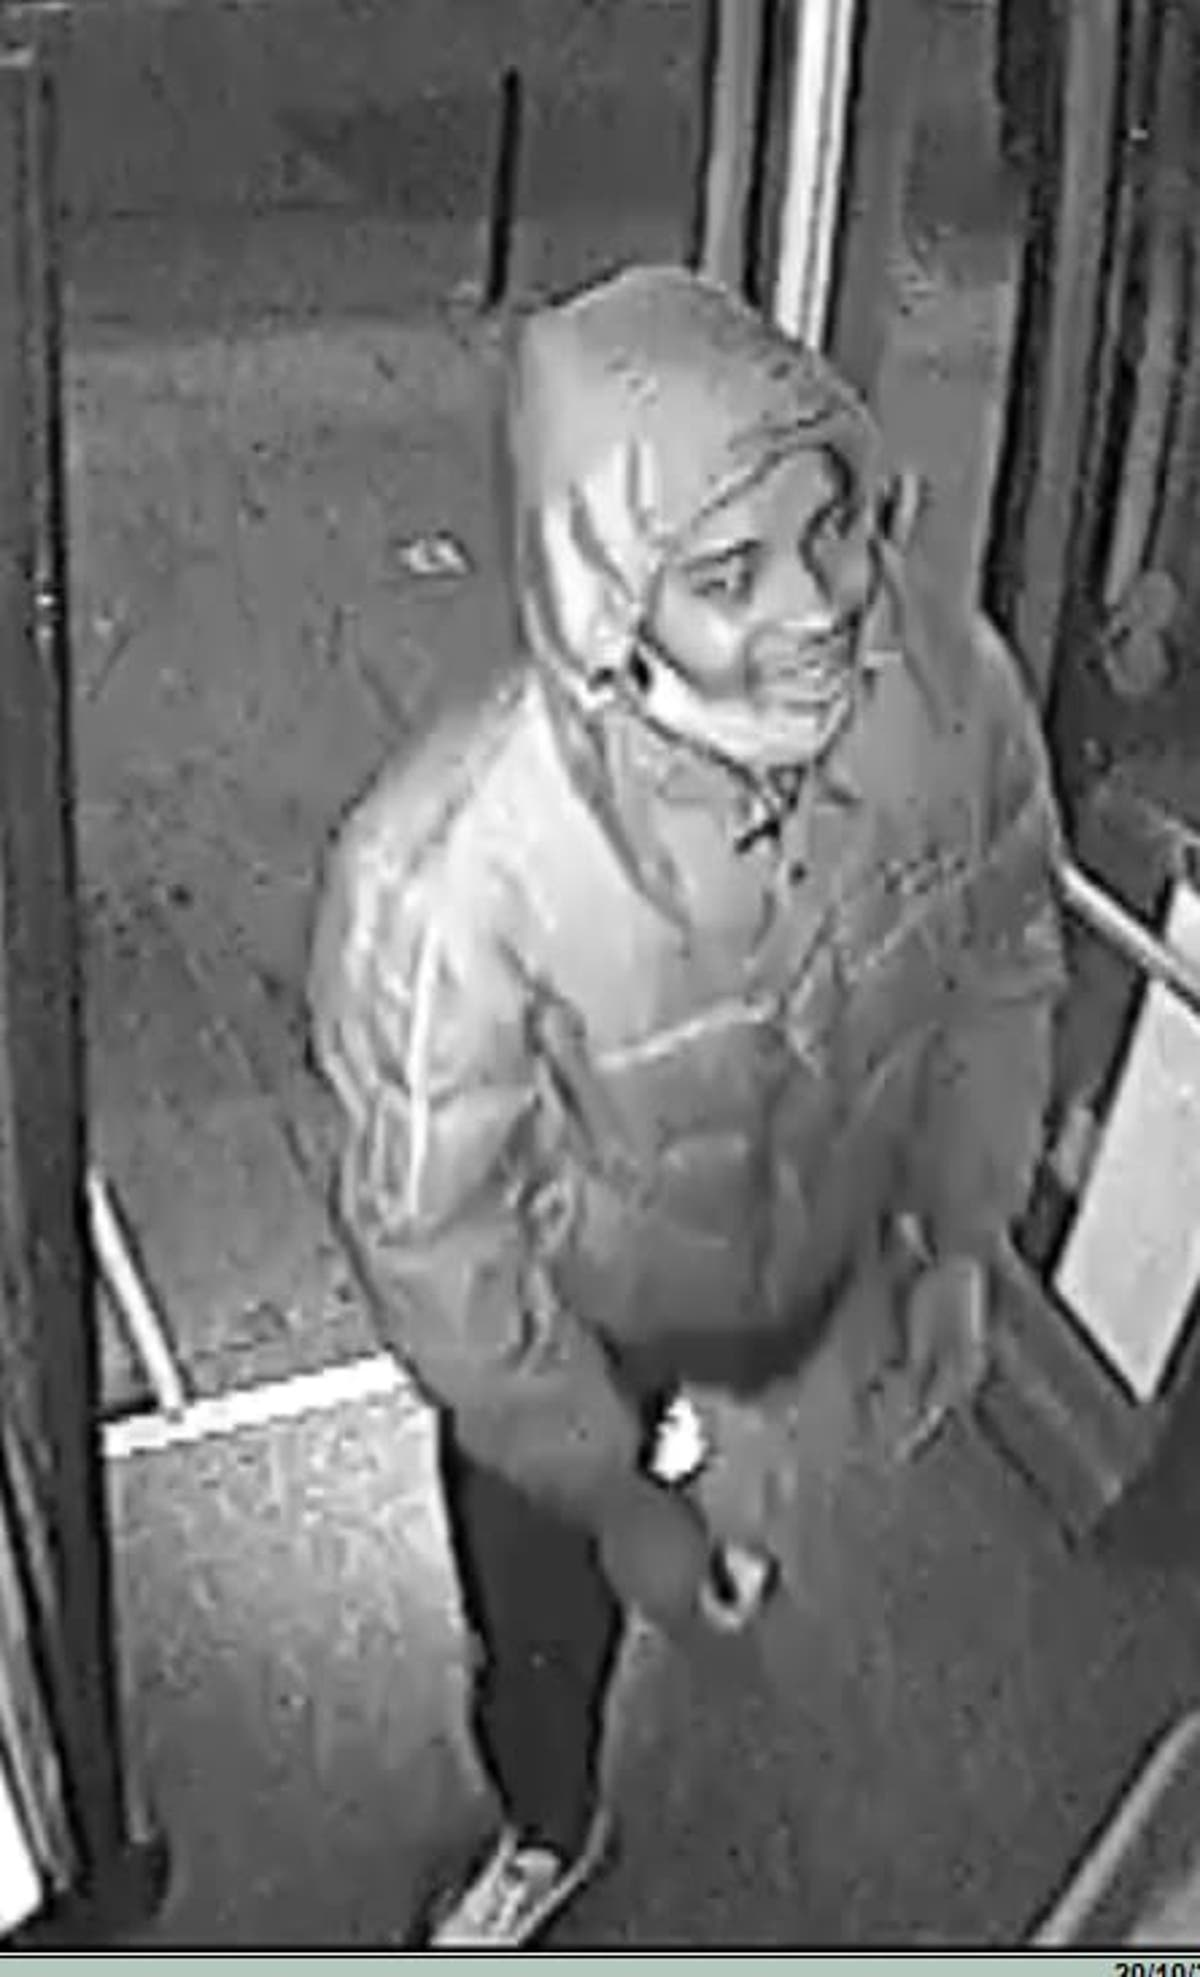 CCTV released in hunt for rapist who attacked woman in London alley